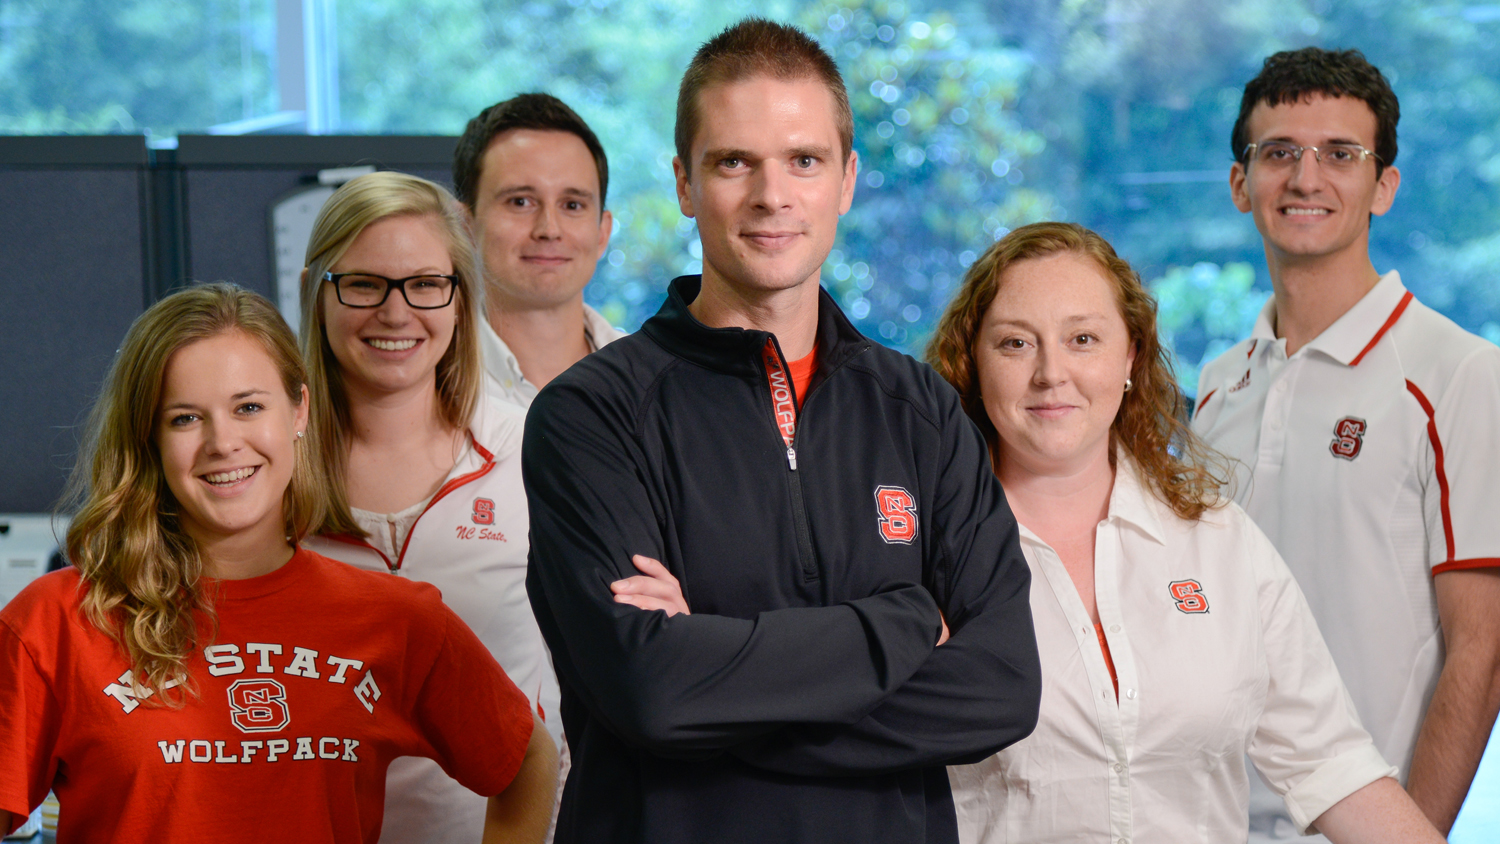 Rodolphe Barrangou, head of NC State's CRISPR Lab with his lab colleagues.